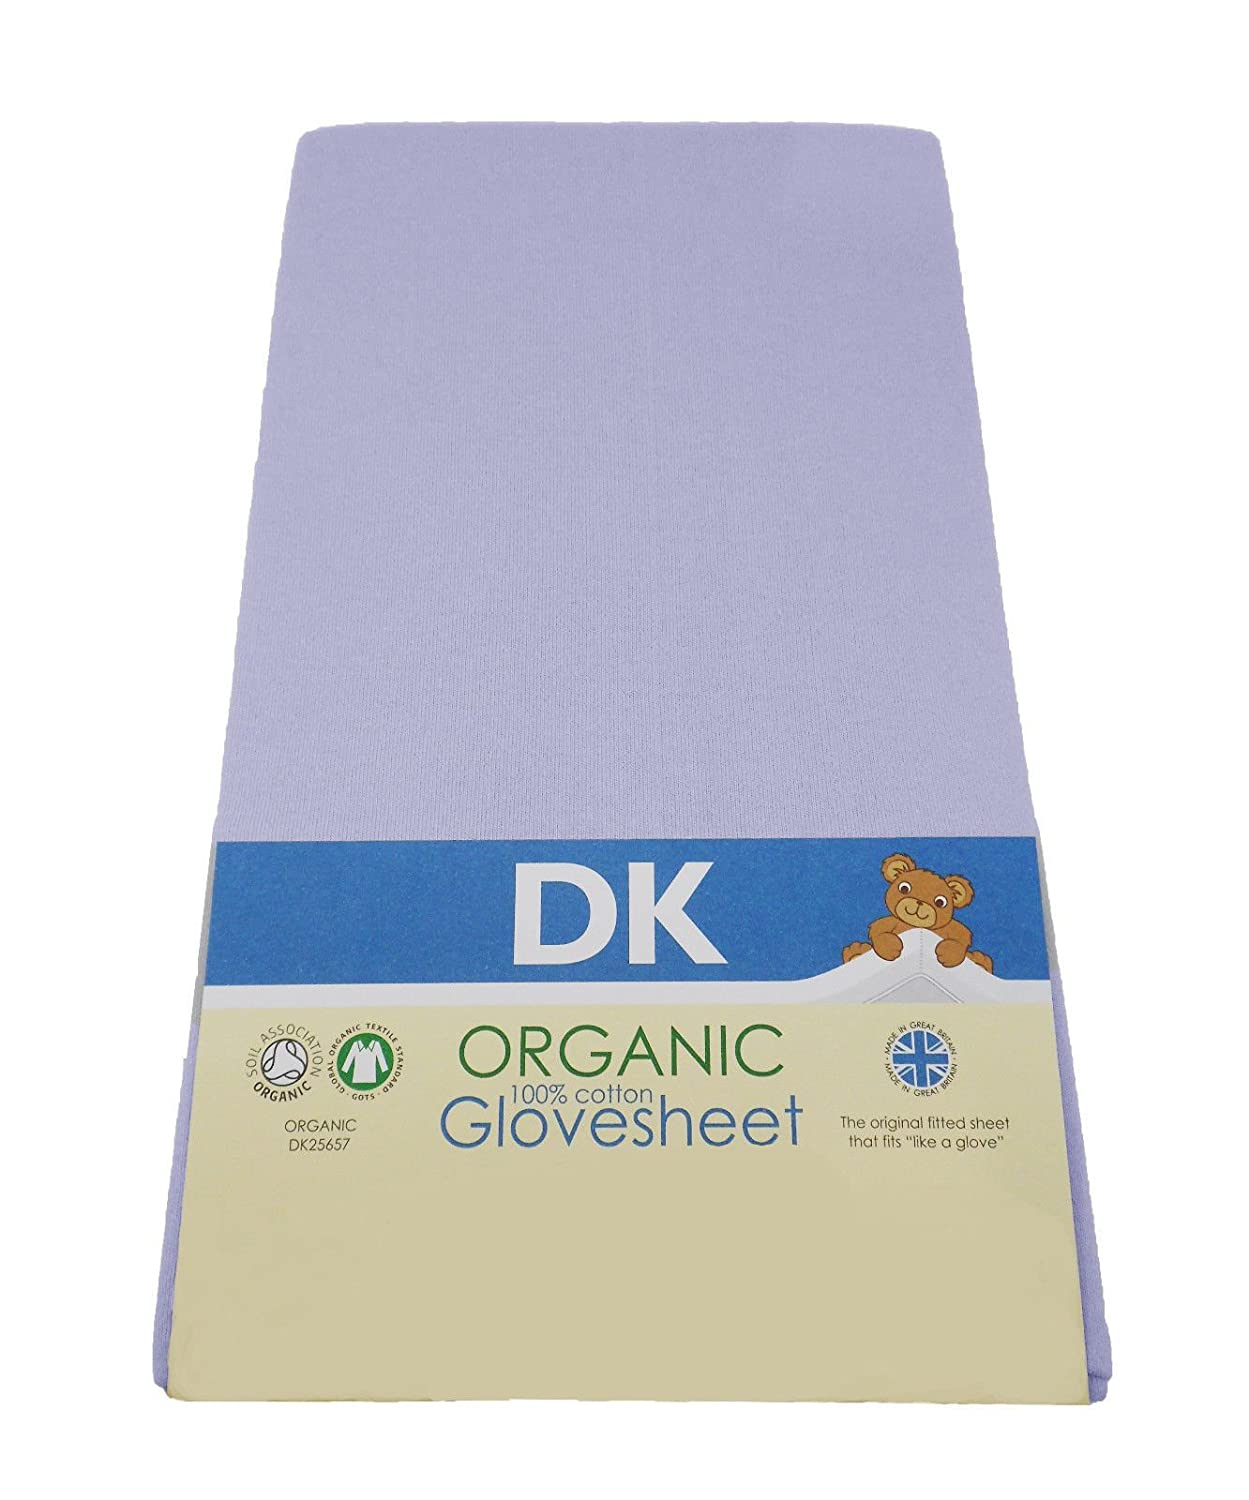 Spacesaver Cot Fitted Sheets 100/% Cotton 100cm x 52cm 1x White 1x Pink